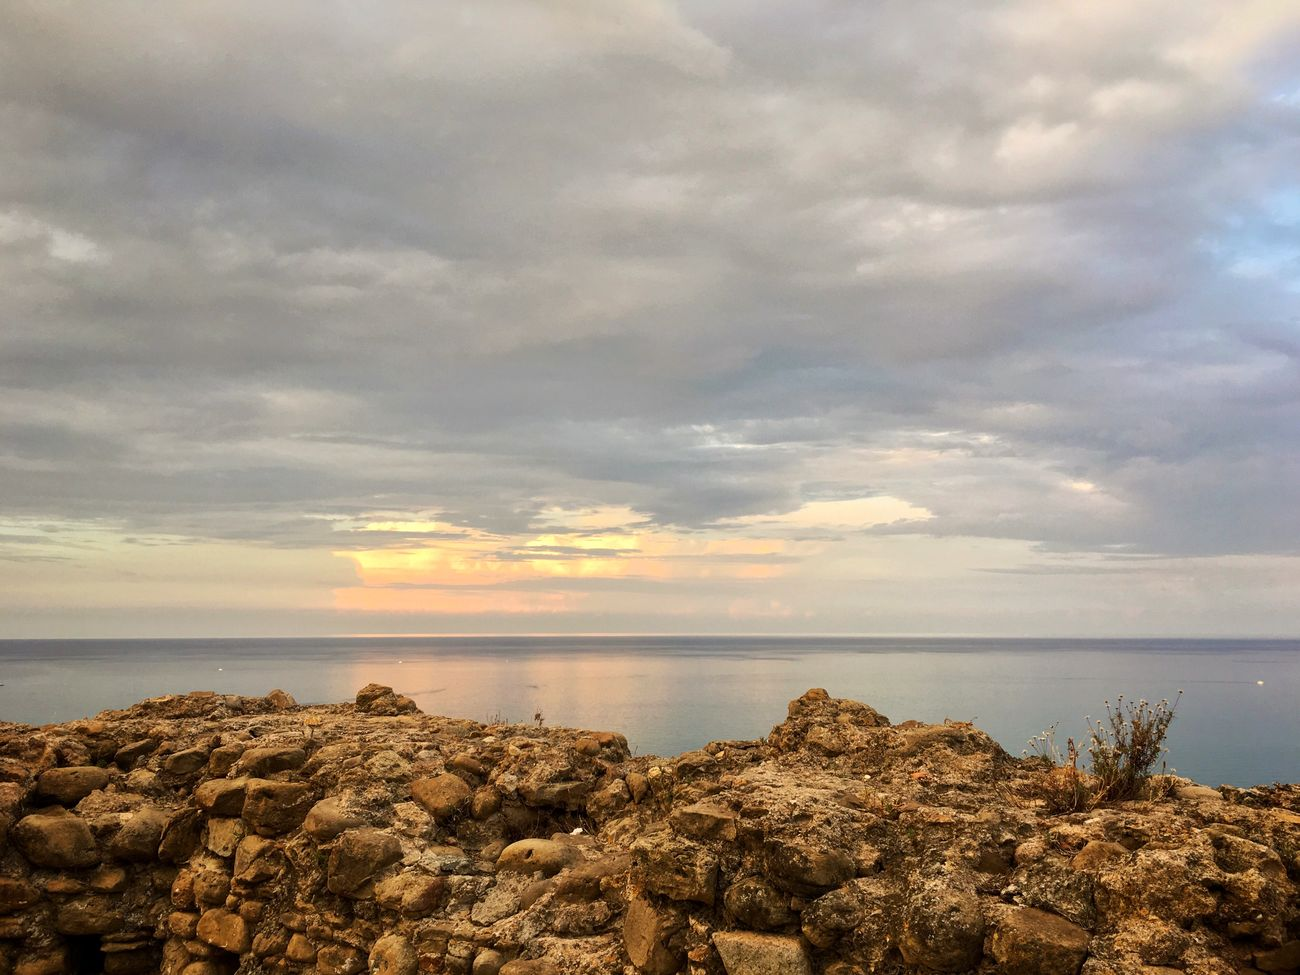 My Favorite Place Seascape Water Sea Horizon Over Water Cloud - Sky Sky Dramatic Sky Summer Italy Summertime Cloudscape Calabria Italia Clouds And Sky Sky_collection Sunset Landscape Seaside Sea And Sky Sunset_collection Panorama